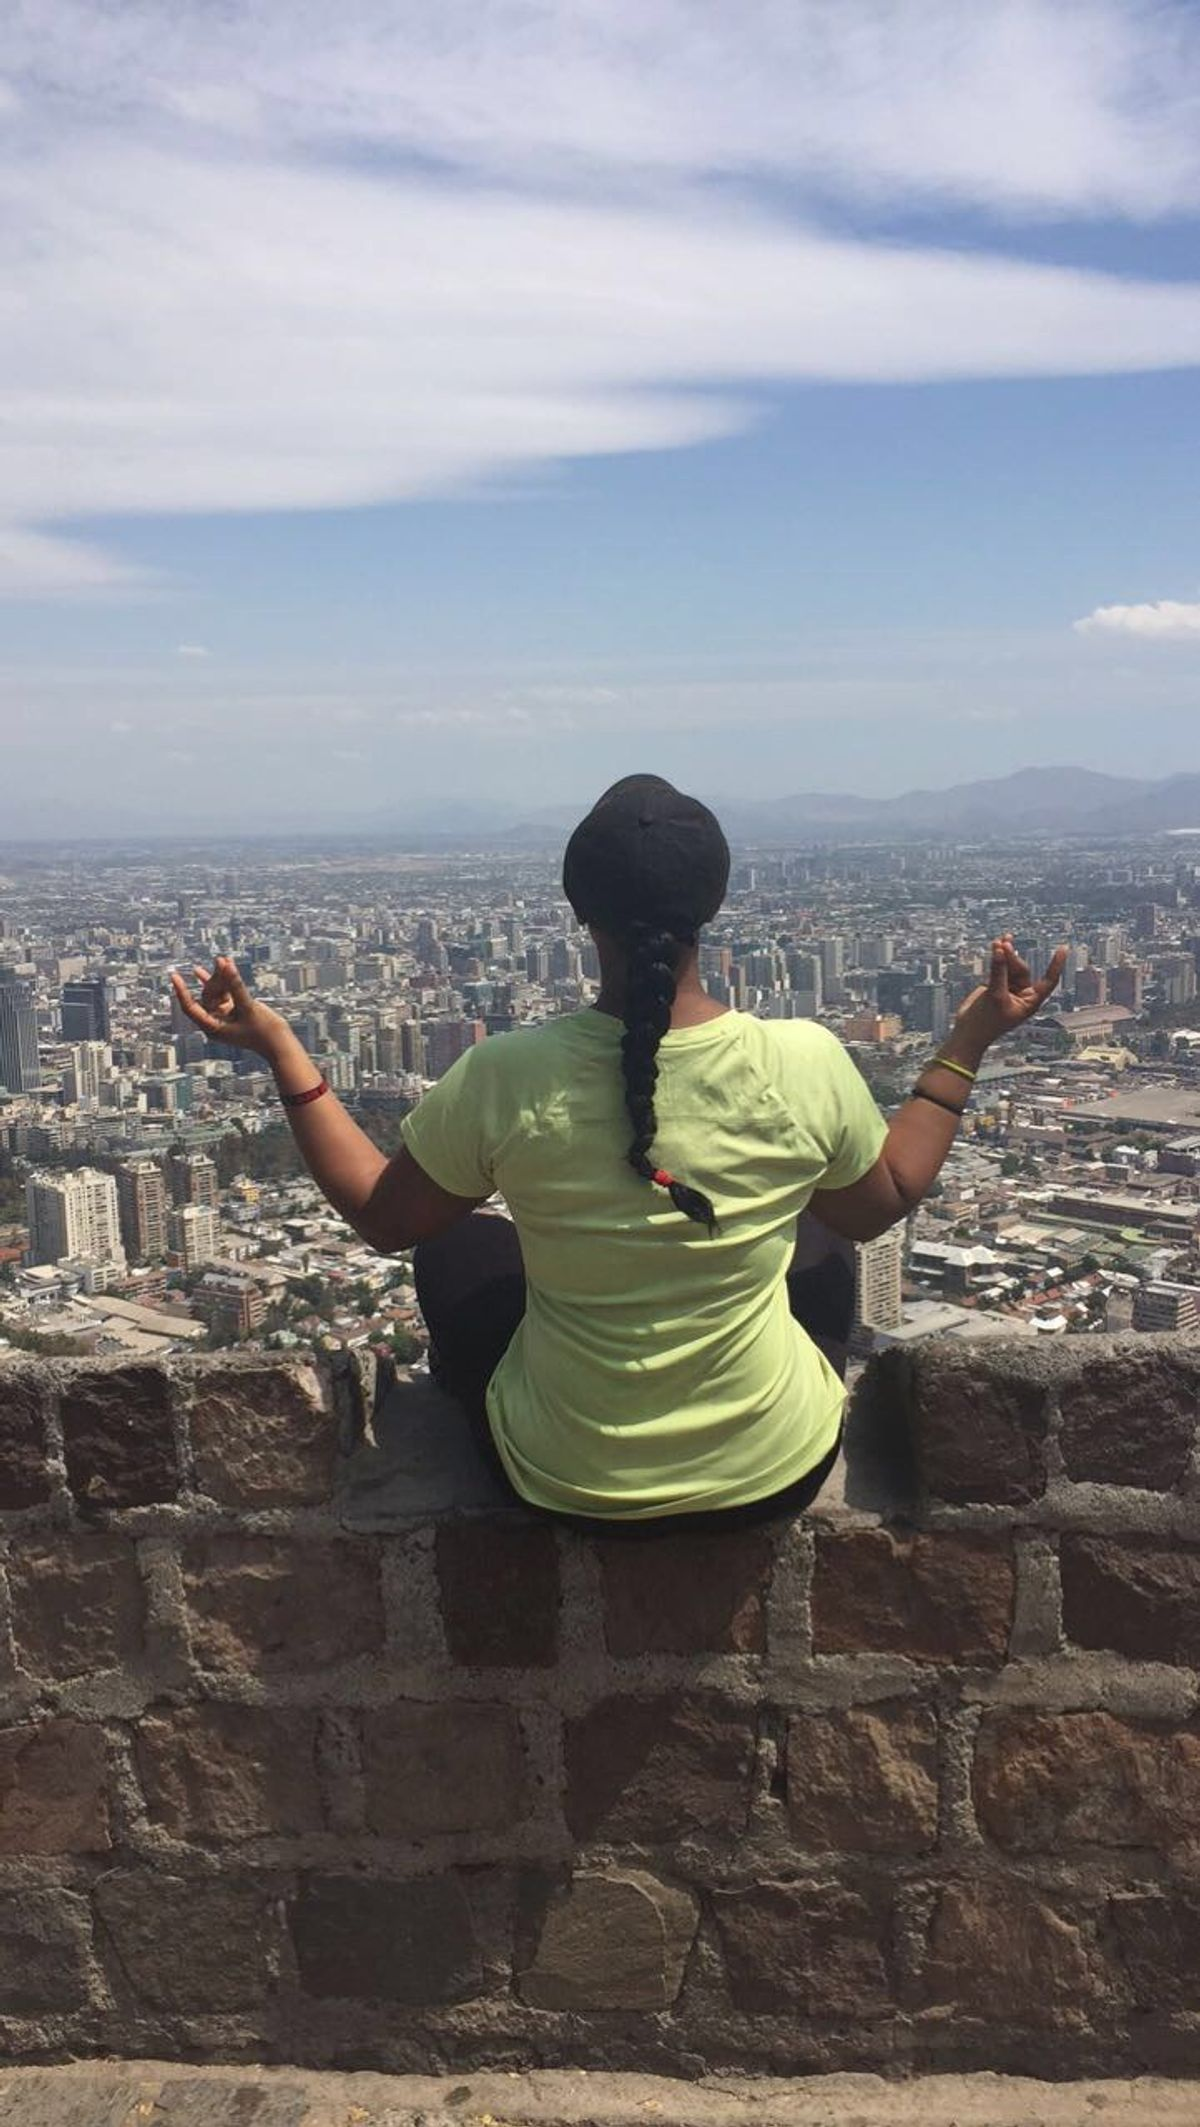 The Struggles With Black Identity While Abroad